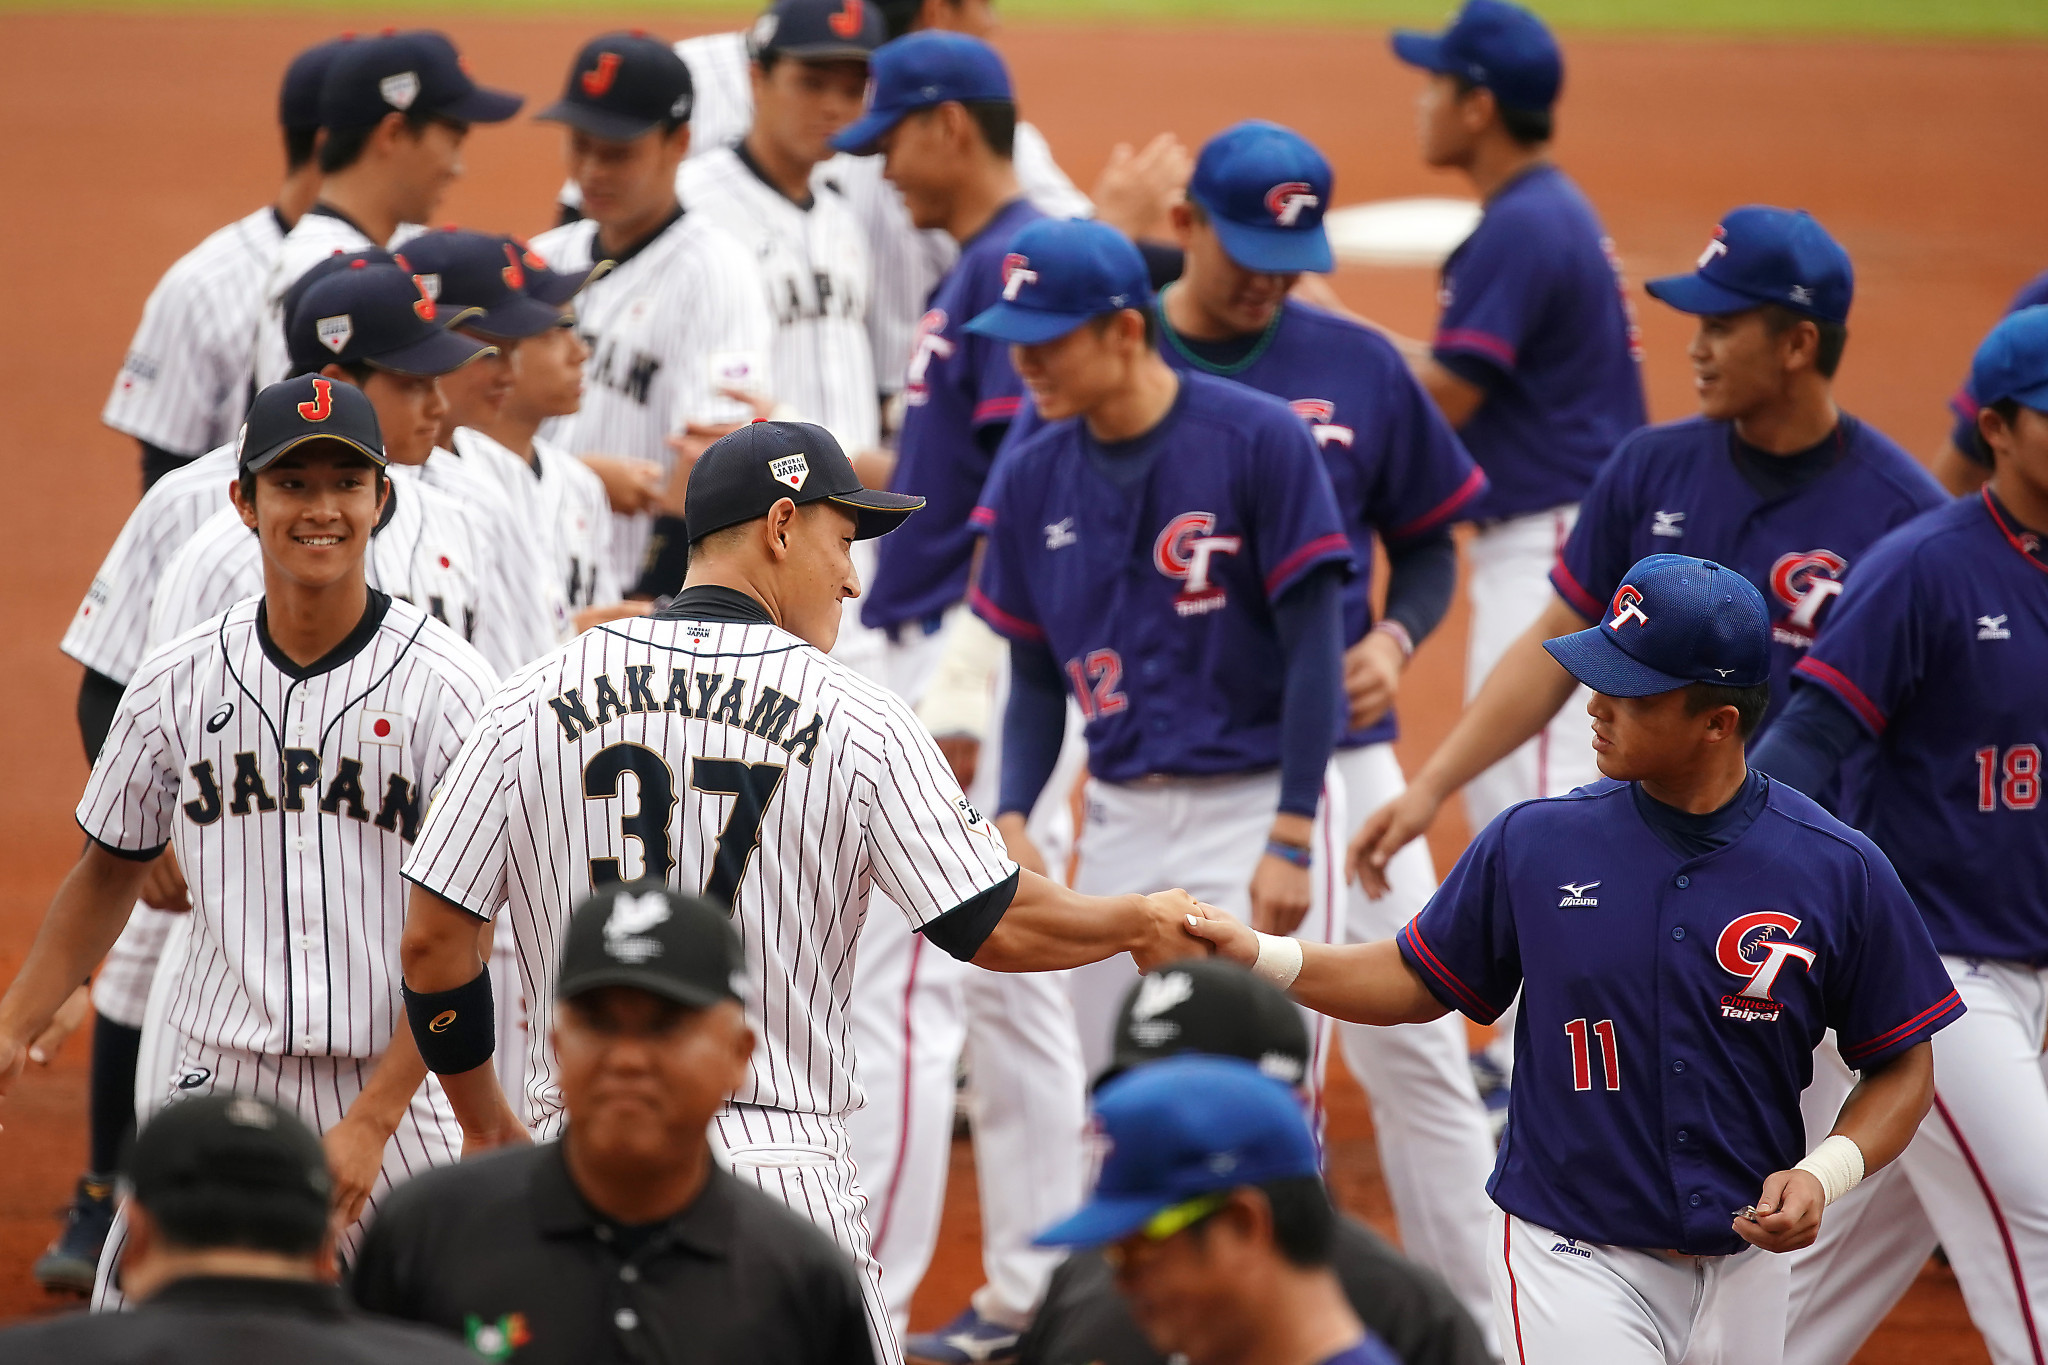 Japan and Chinese Taipei will meet in the final of the tournament tomorrow ©FISU